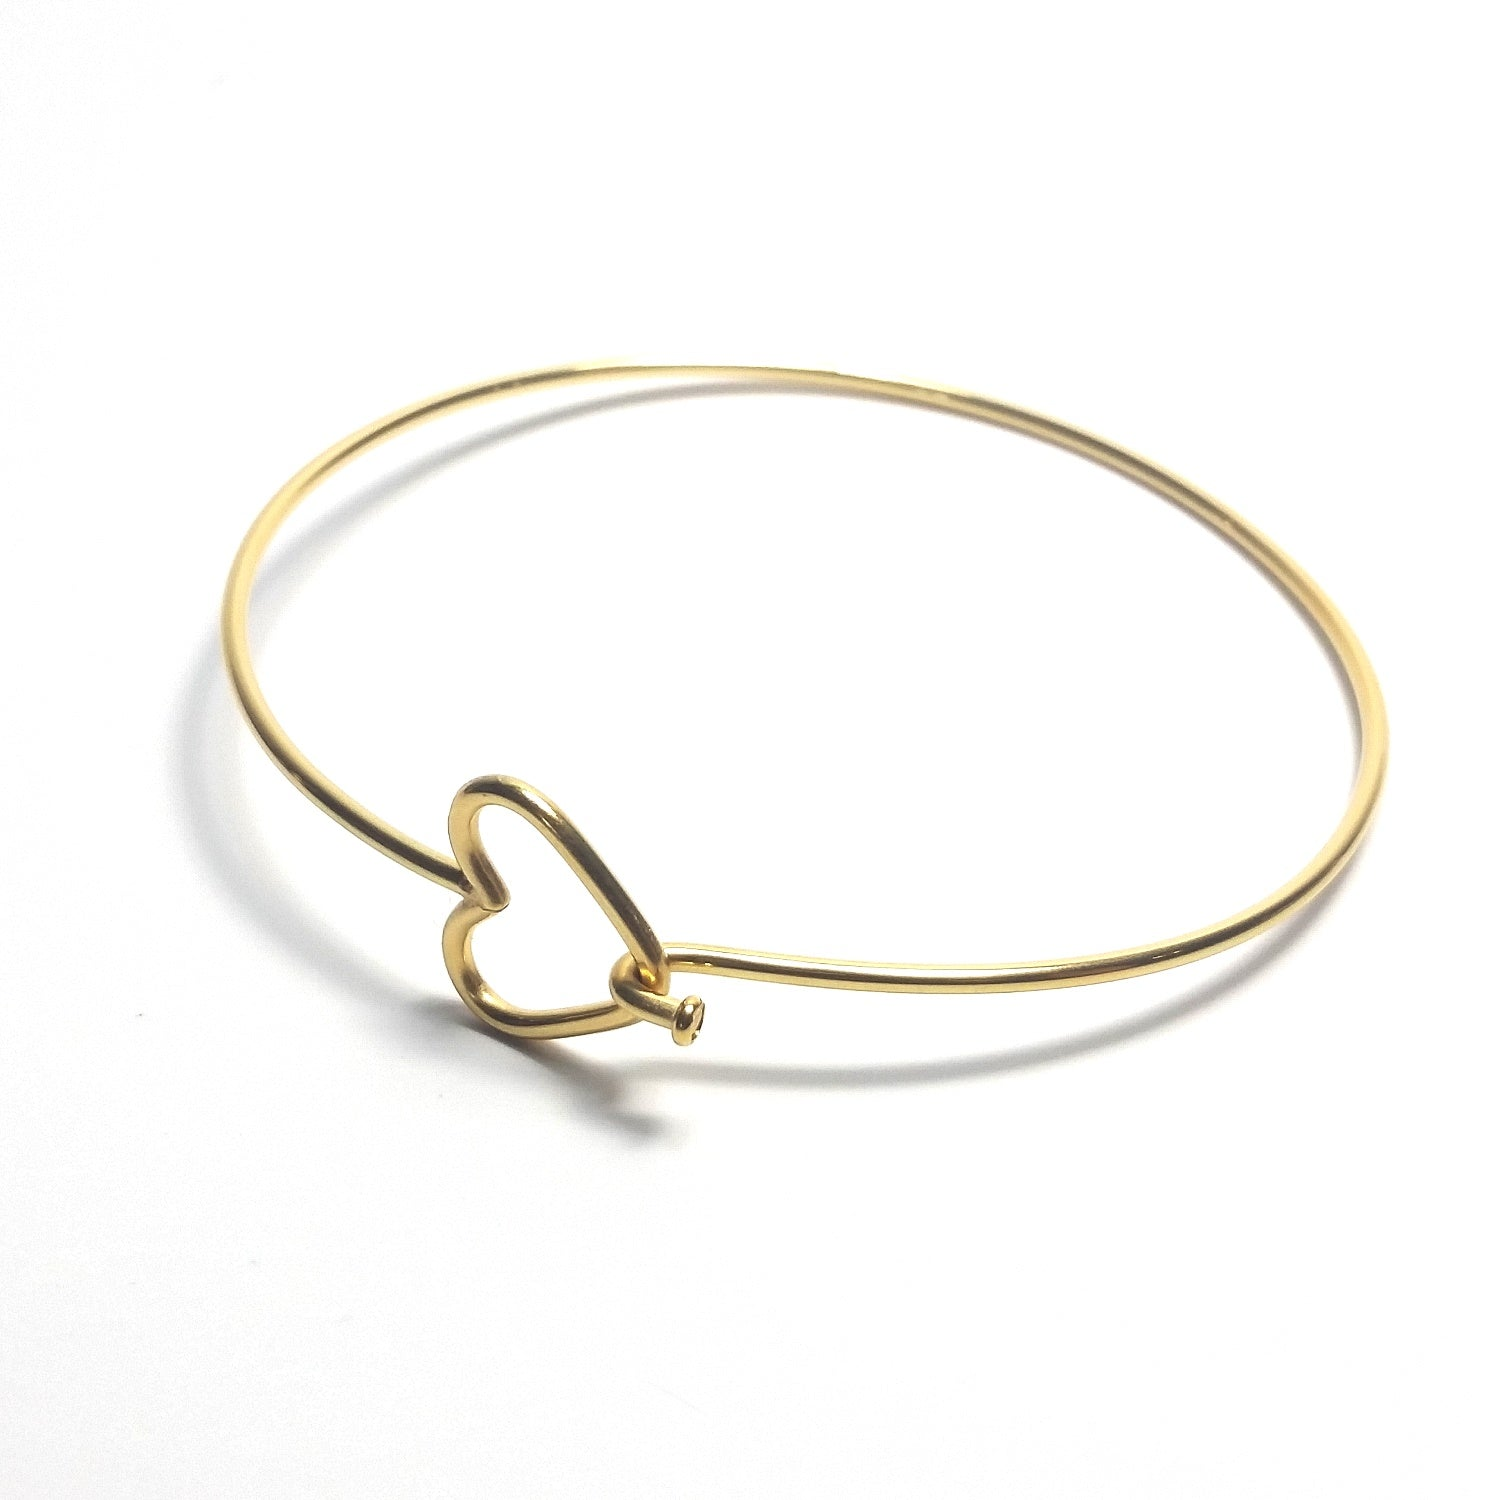 overstock gold shipping jewelry bangle bracelets textured bangles polished today karat free watches product